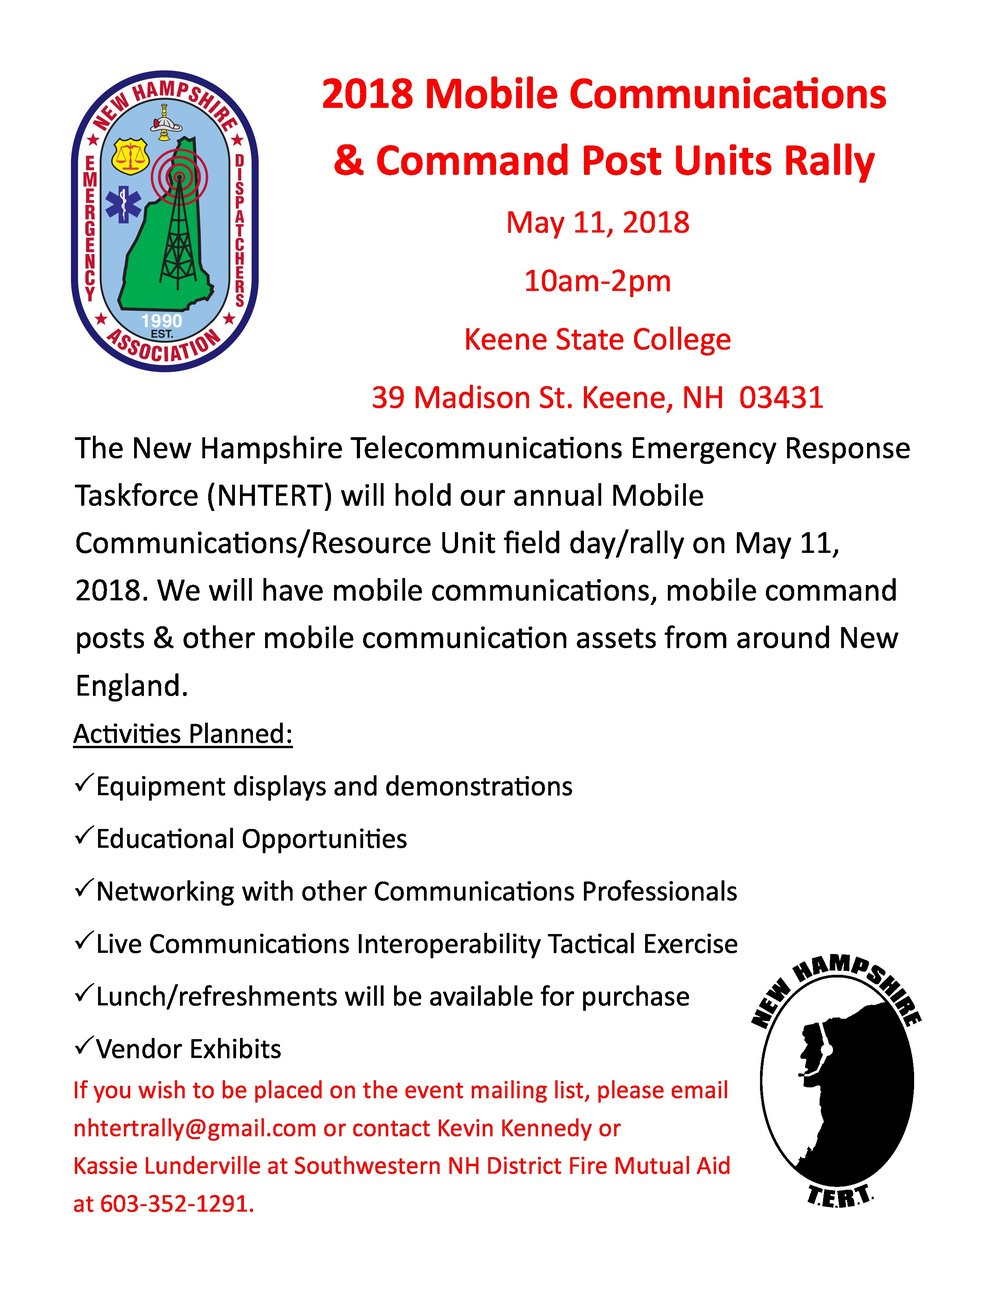 tert rally flyer-page-0.jpg